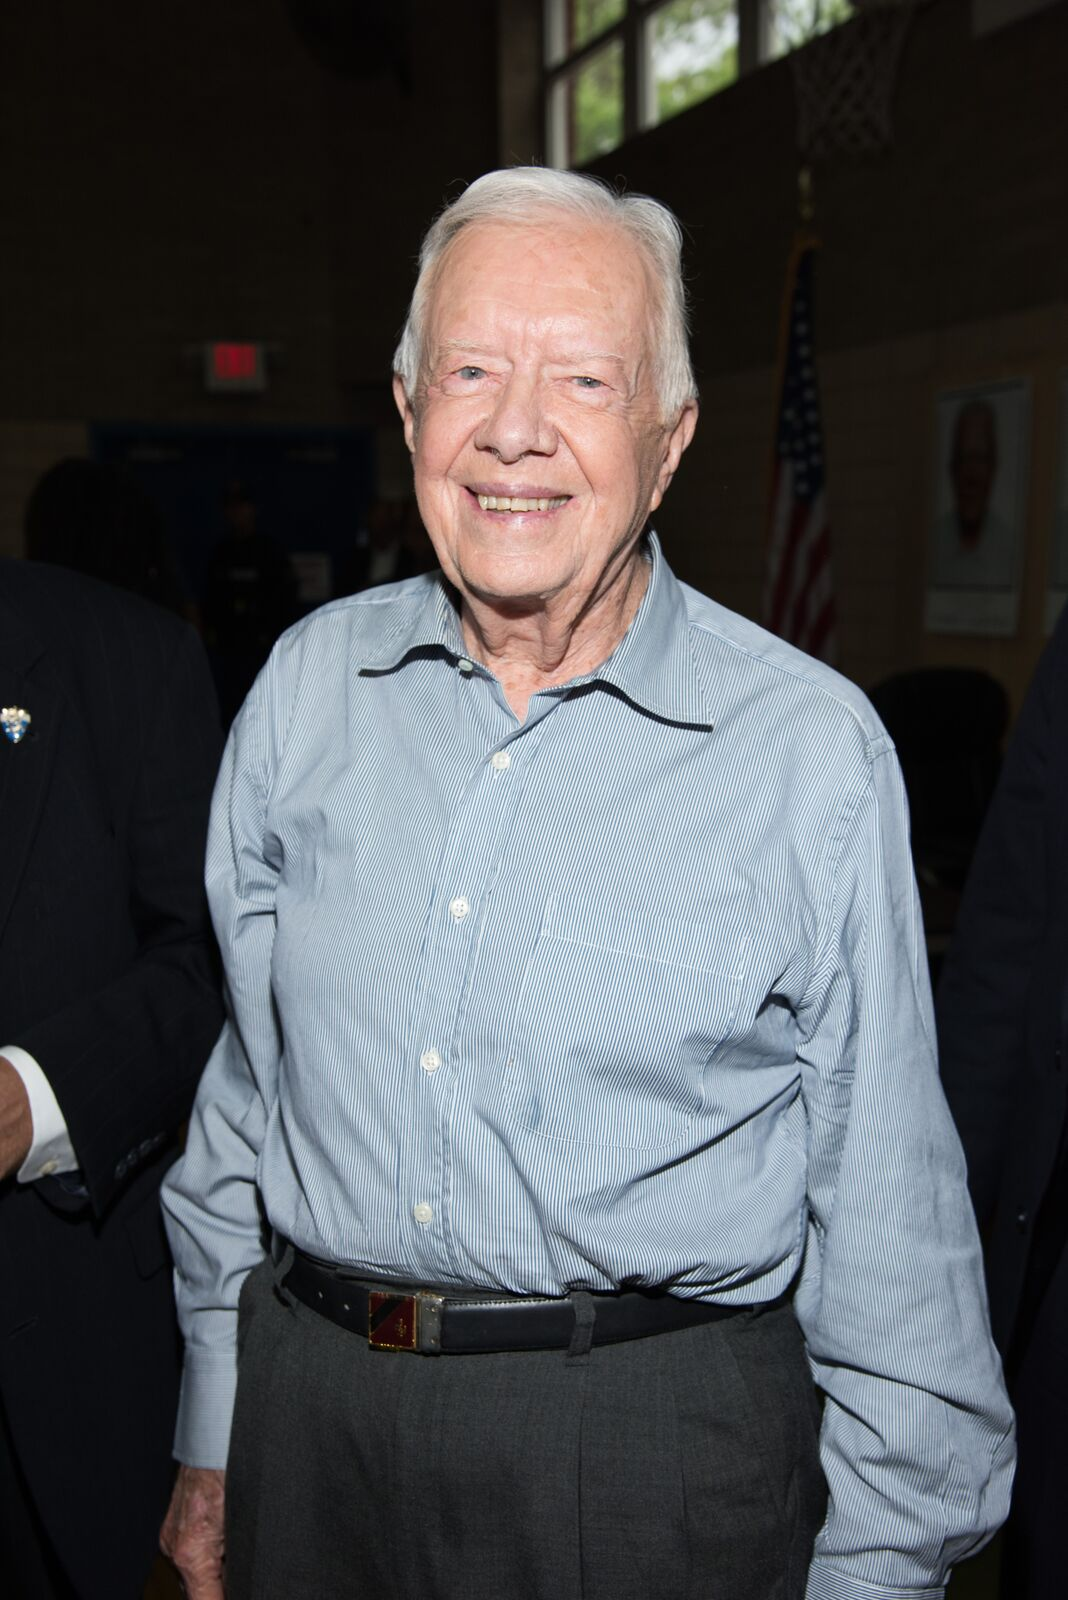 "Former President of the United States Jimmy Carter signs copies of ""A Full Life Reflections At Ninety"" at Bookends Bookstore on July 8, 2015 in Ridgewood, New Jersey 